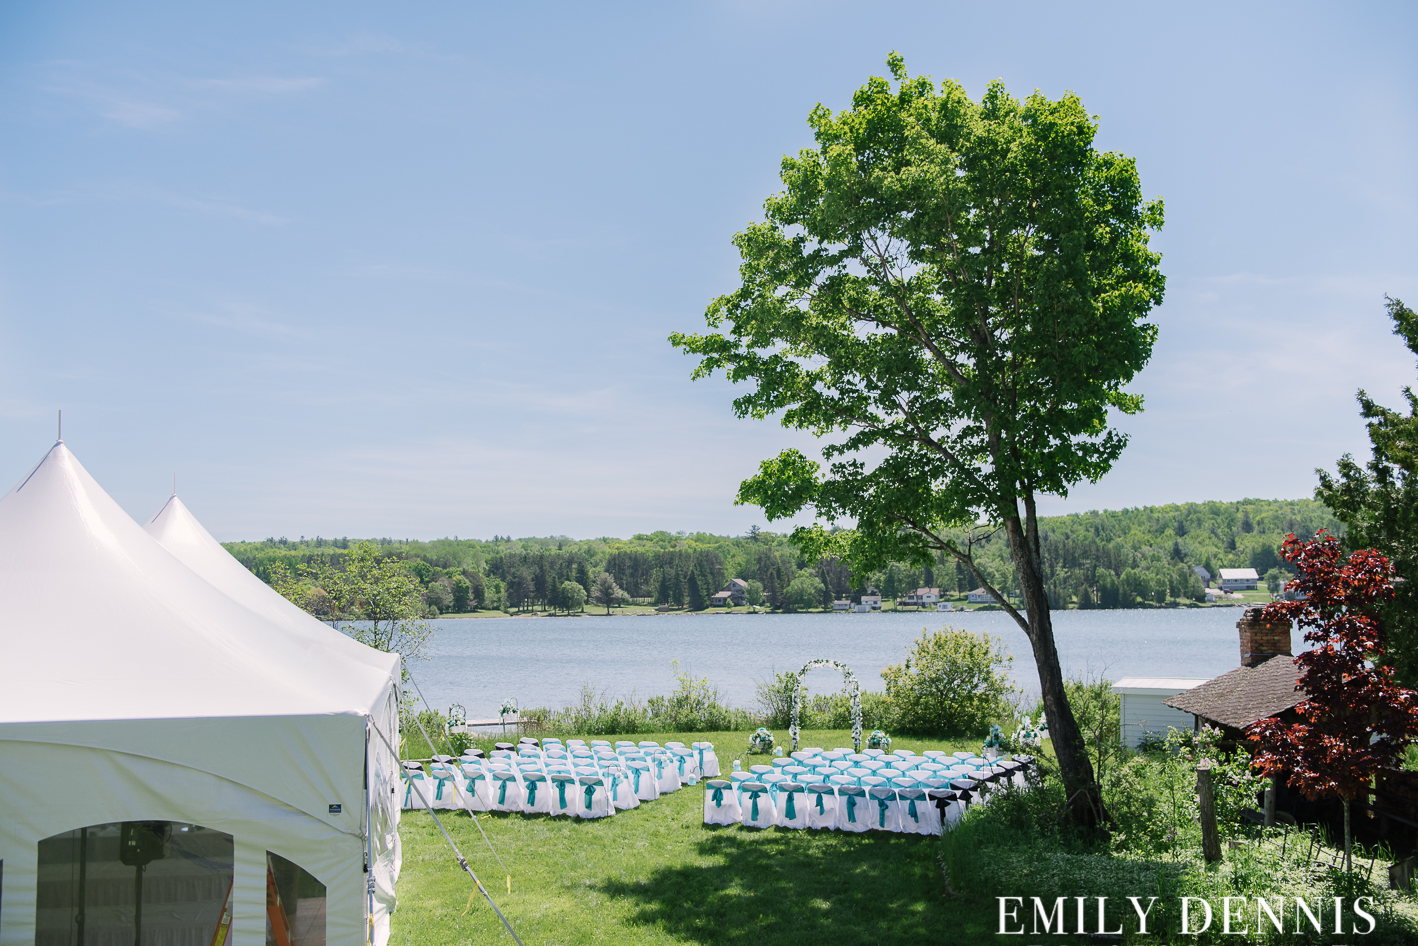 EMILY_DENNIS_PHOTOGRAPHY-7